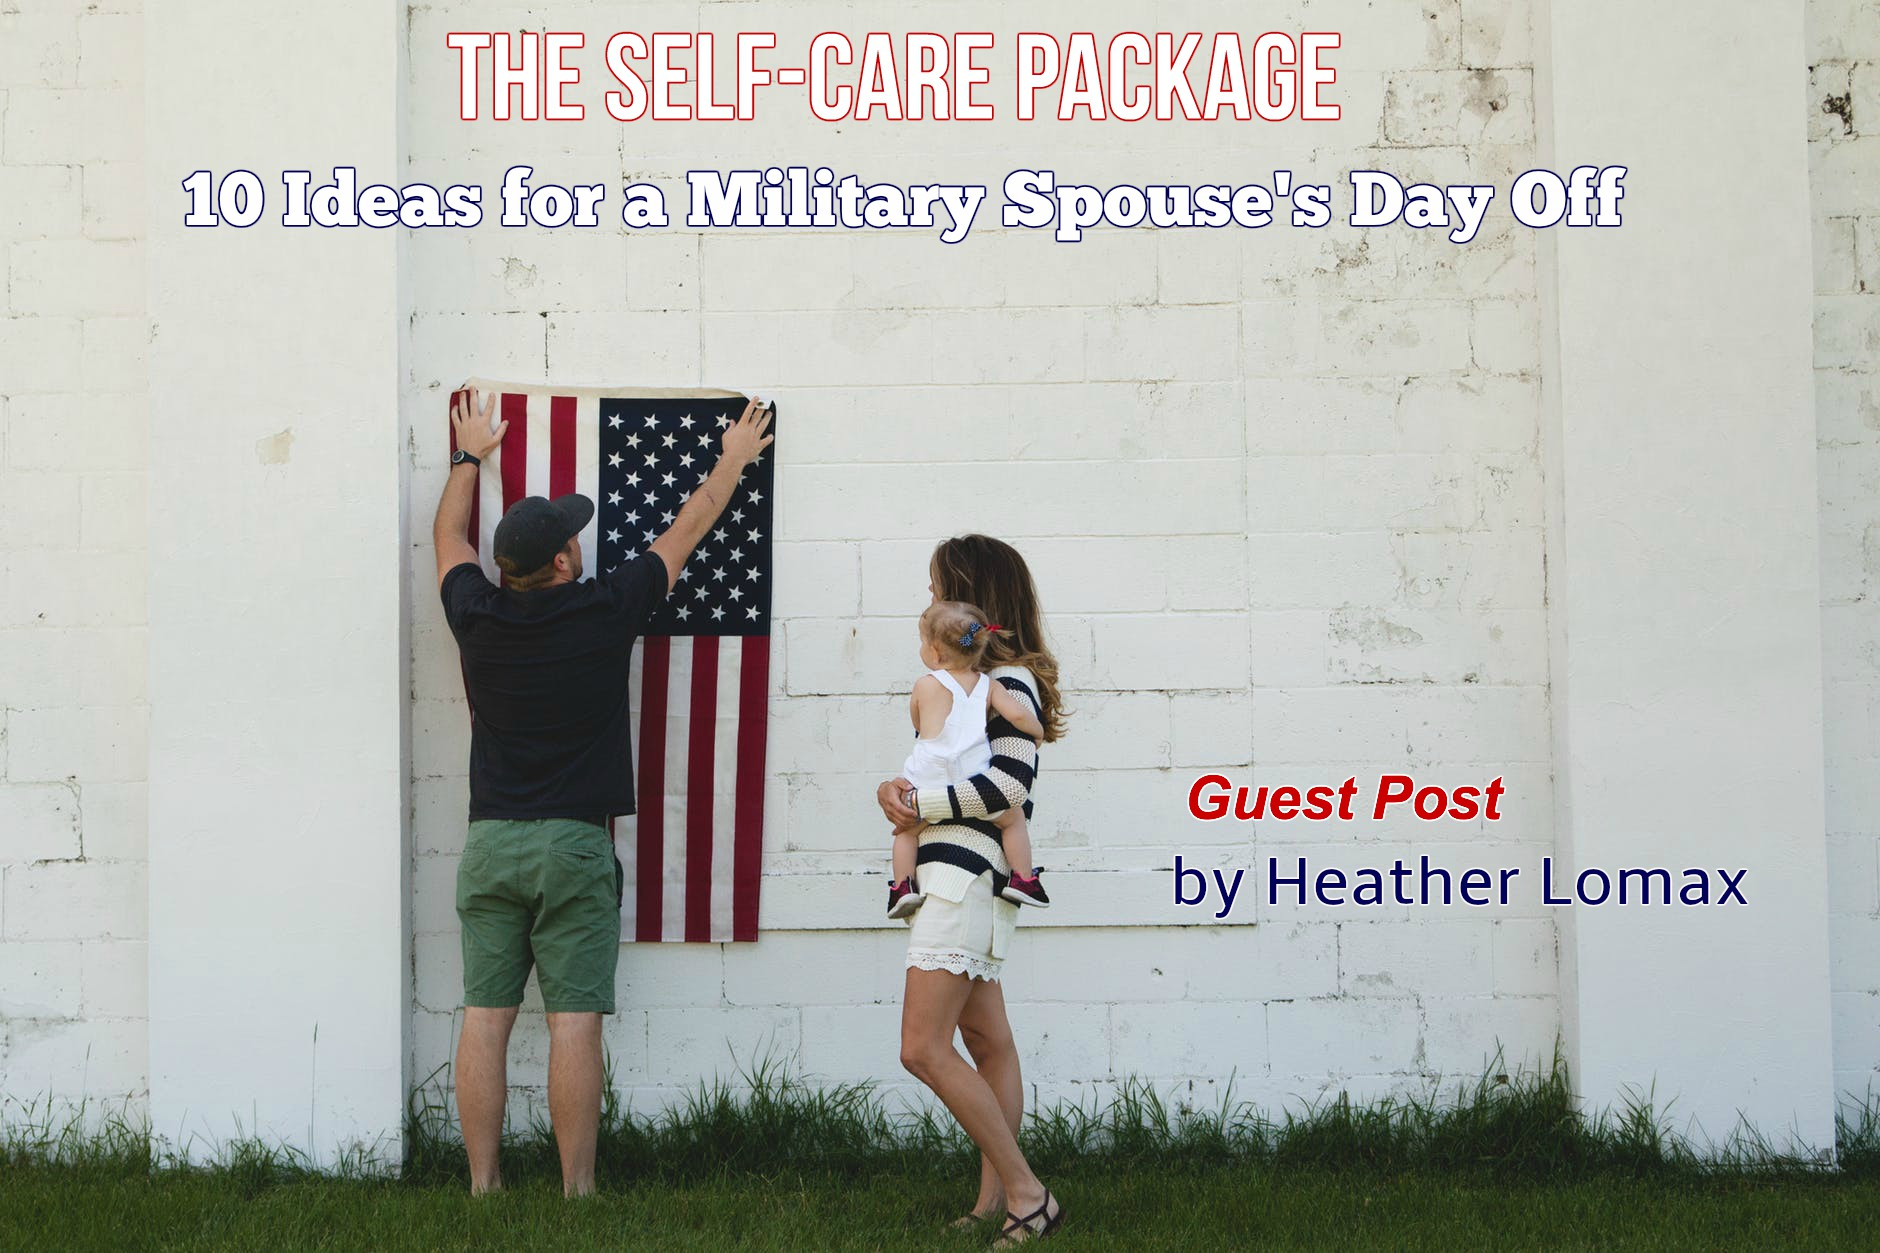 Guest Post: The Self-Care Care Package – 10 Ideas for a Military Spouse's Day Off